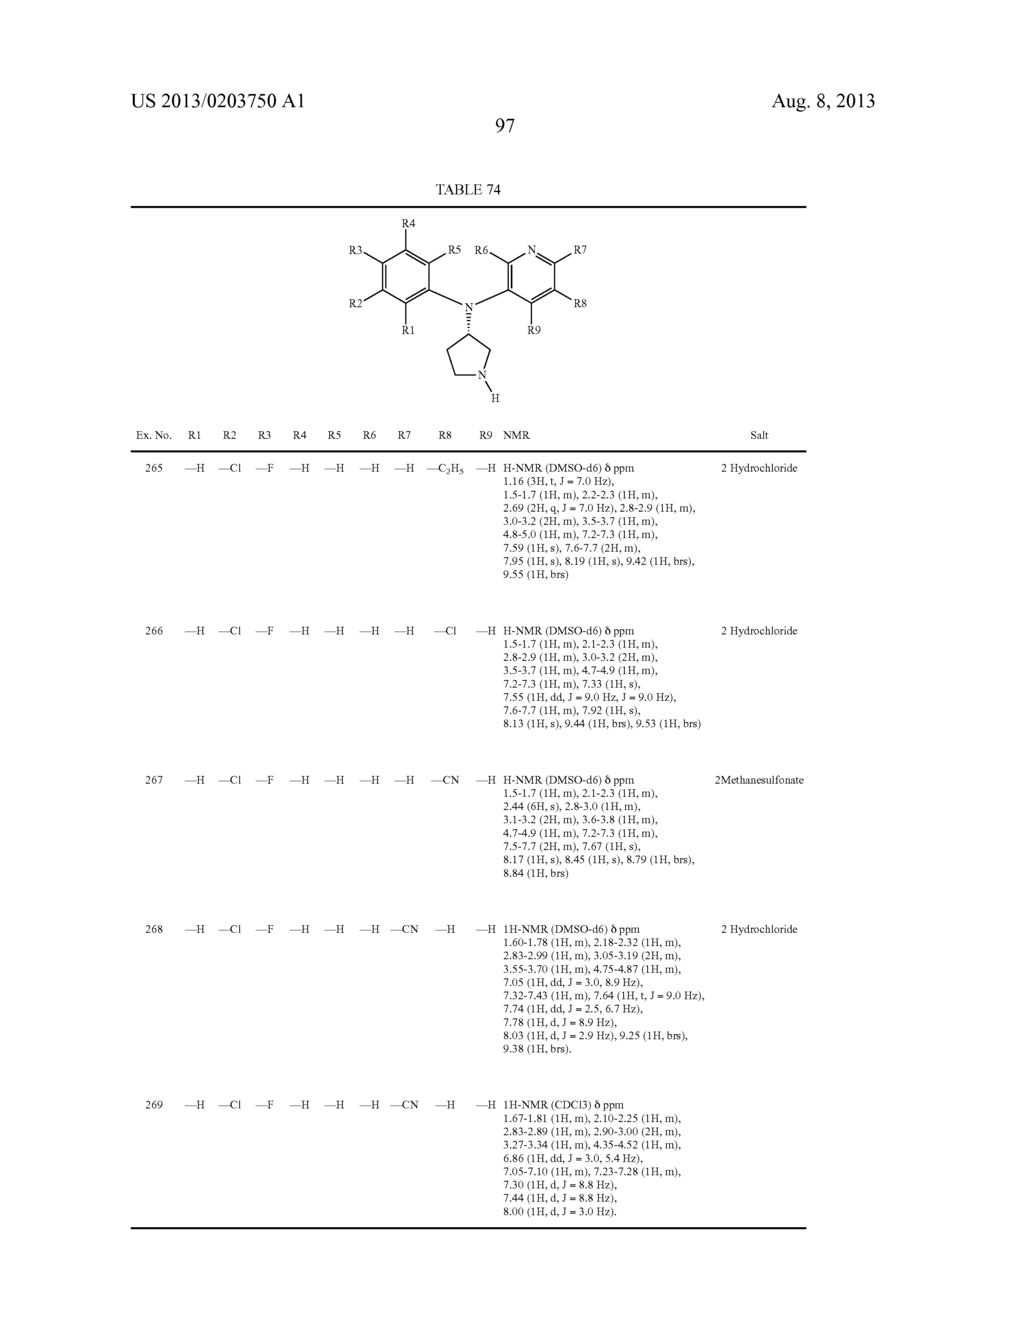 N,N-SUBSTITUTED 3-AMINOPYRROLIDINE COMPOUNDS USEFUL AS MONOAMINES REUPTAKE     INHIBITORS - diagram, schematic, and image 98